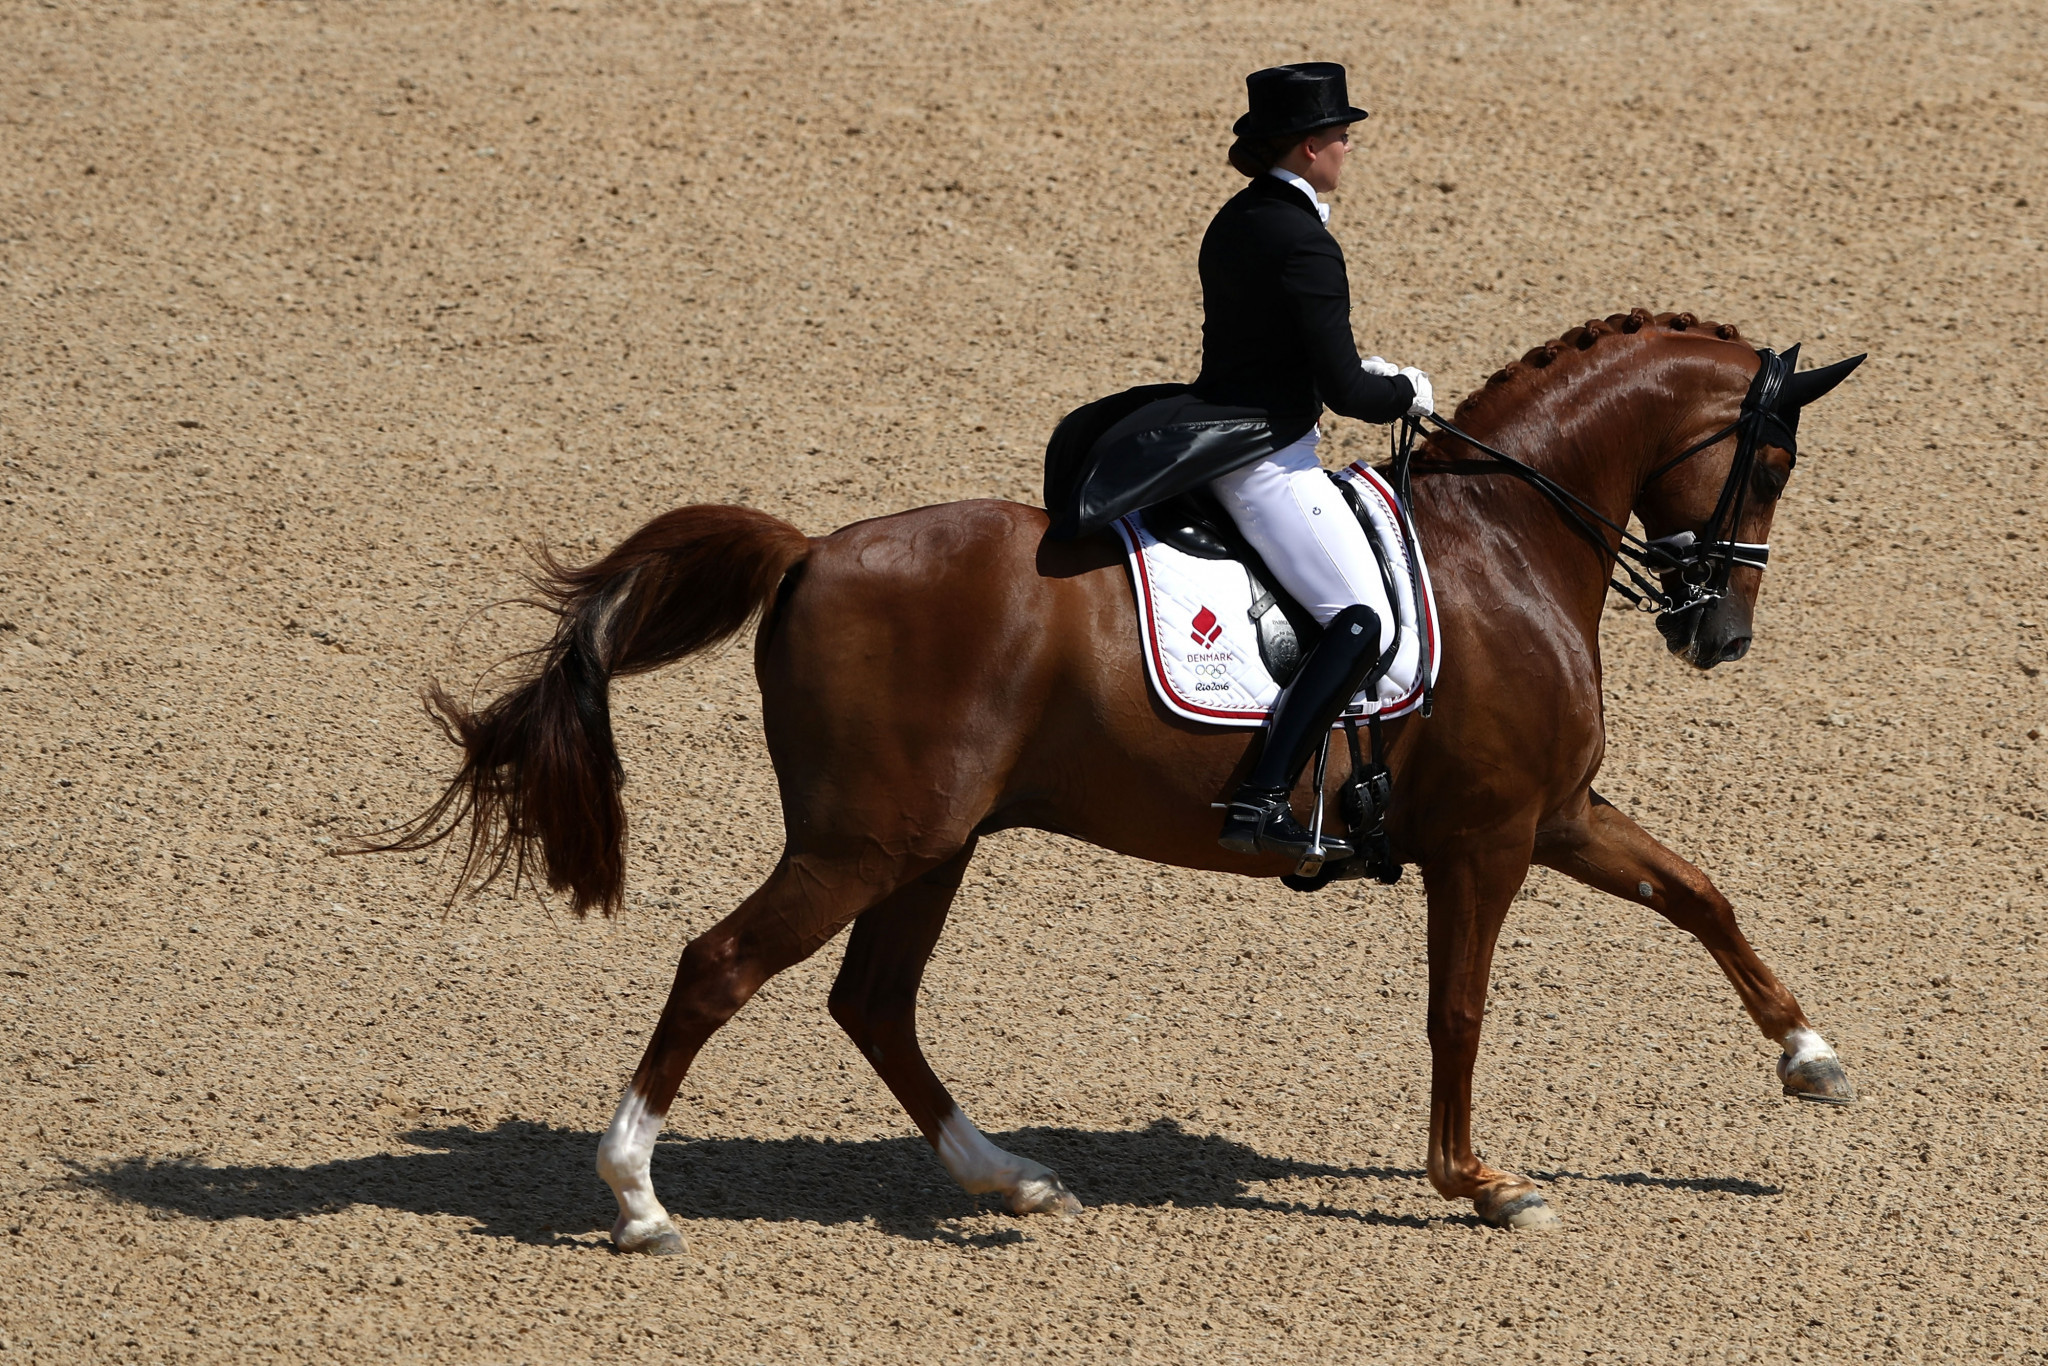 Dufour wins for second successive day at home FEI Dressage World Cup